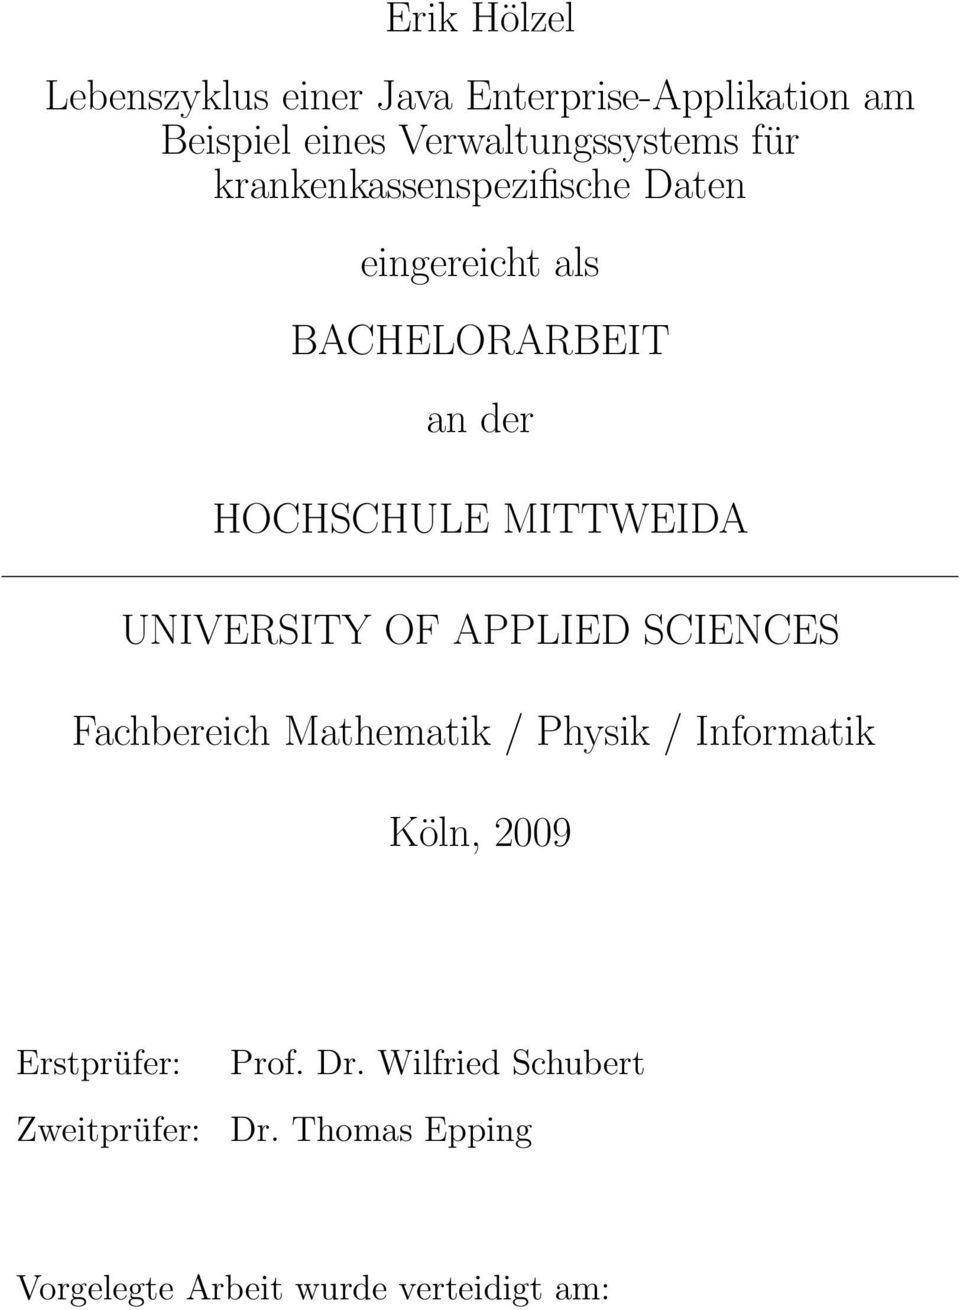 UNIVERSITY OF APPLIED SCIENCES Fachbereich Mathematik / Physik / Informatik Köln, 2009